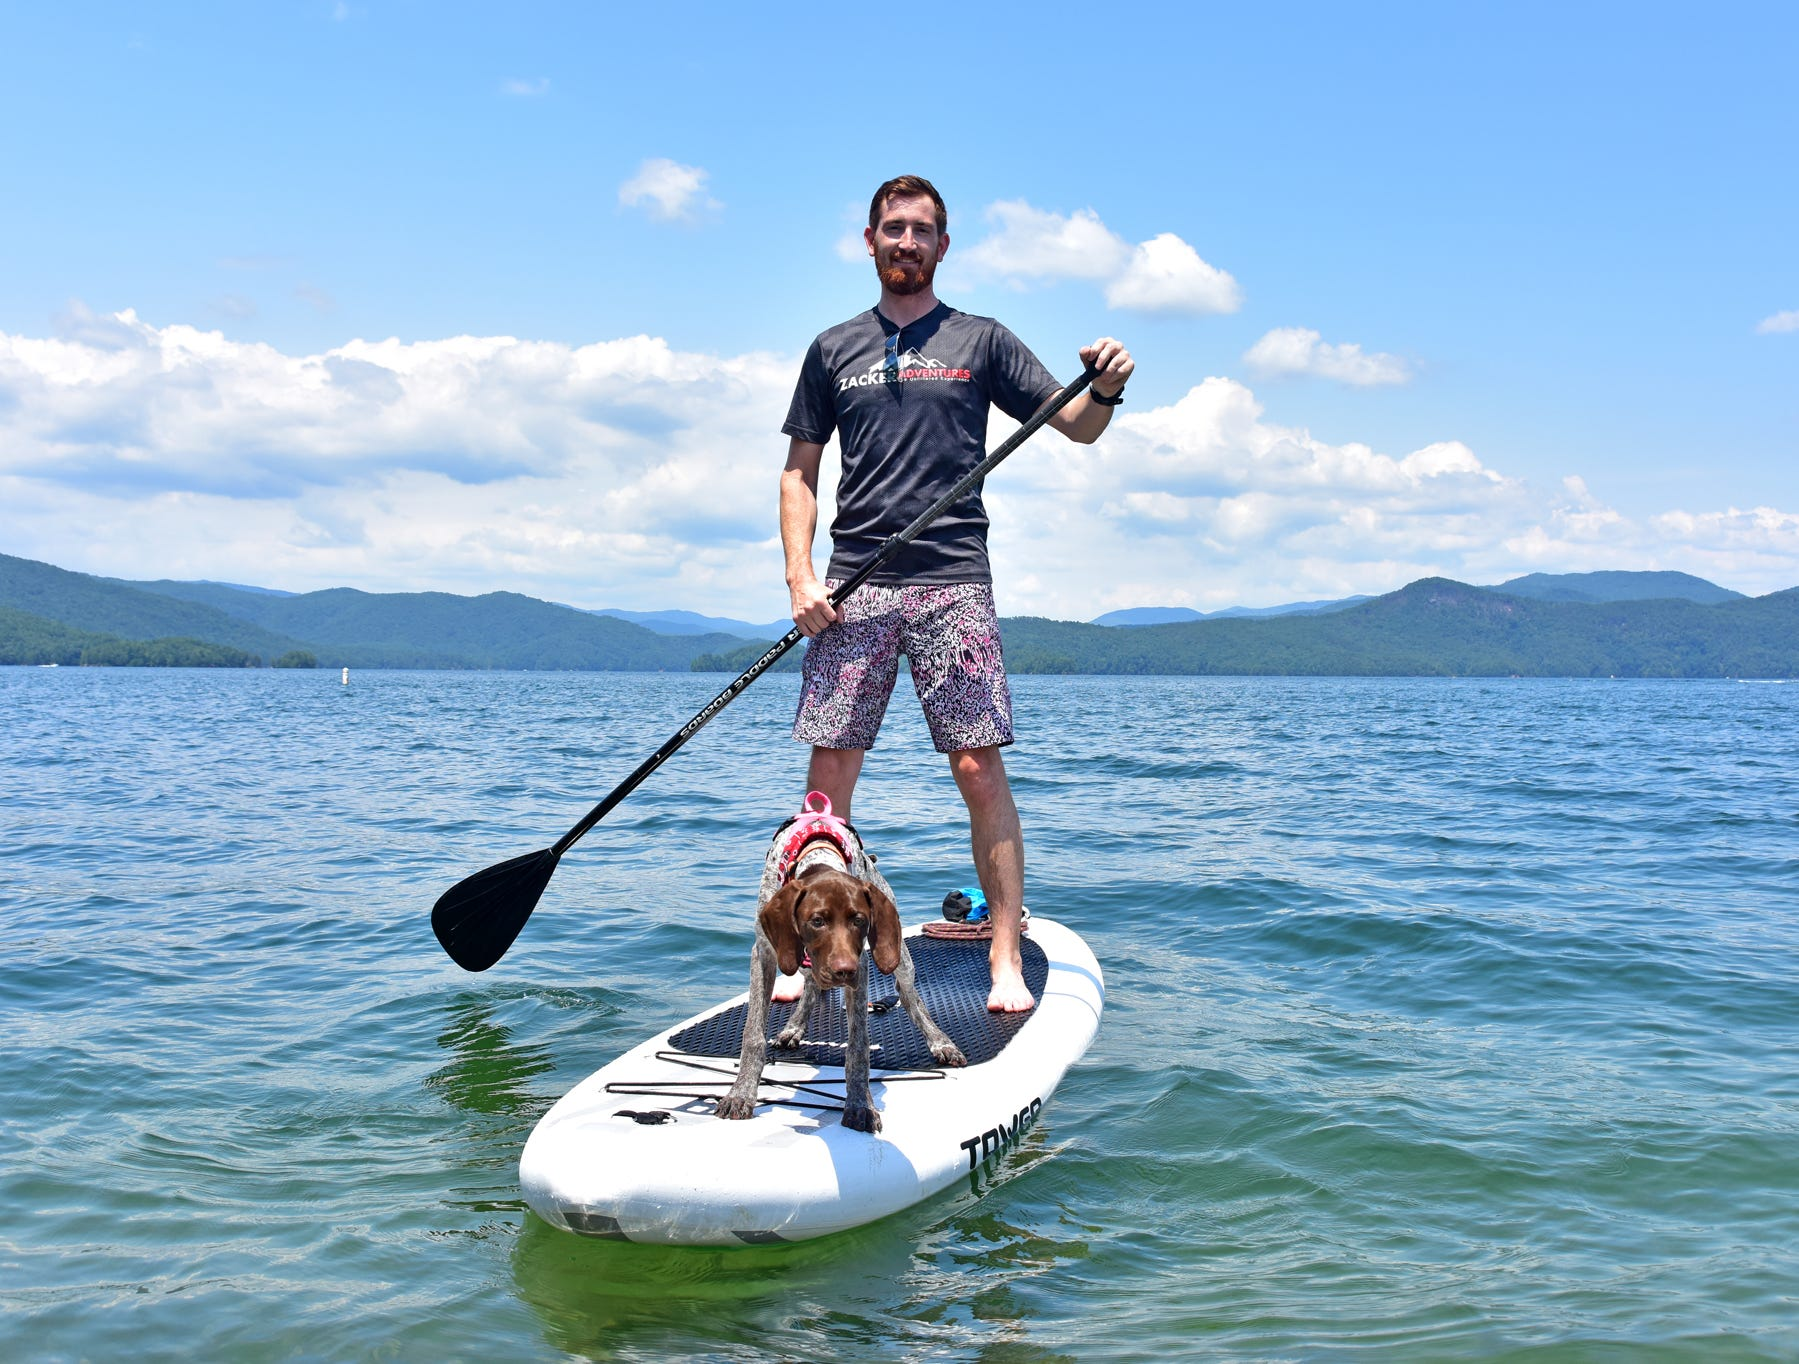 Stephen Townsend and his dog Maggie ride on a paddle board on Lake Jocassee.